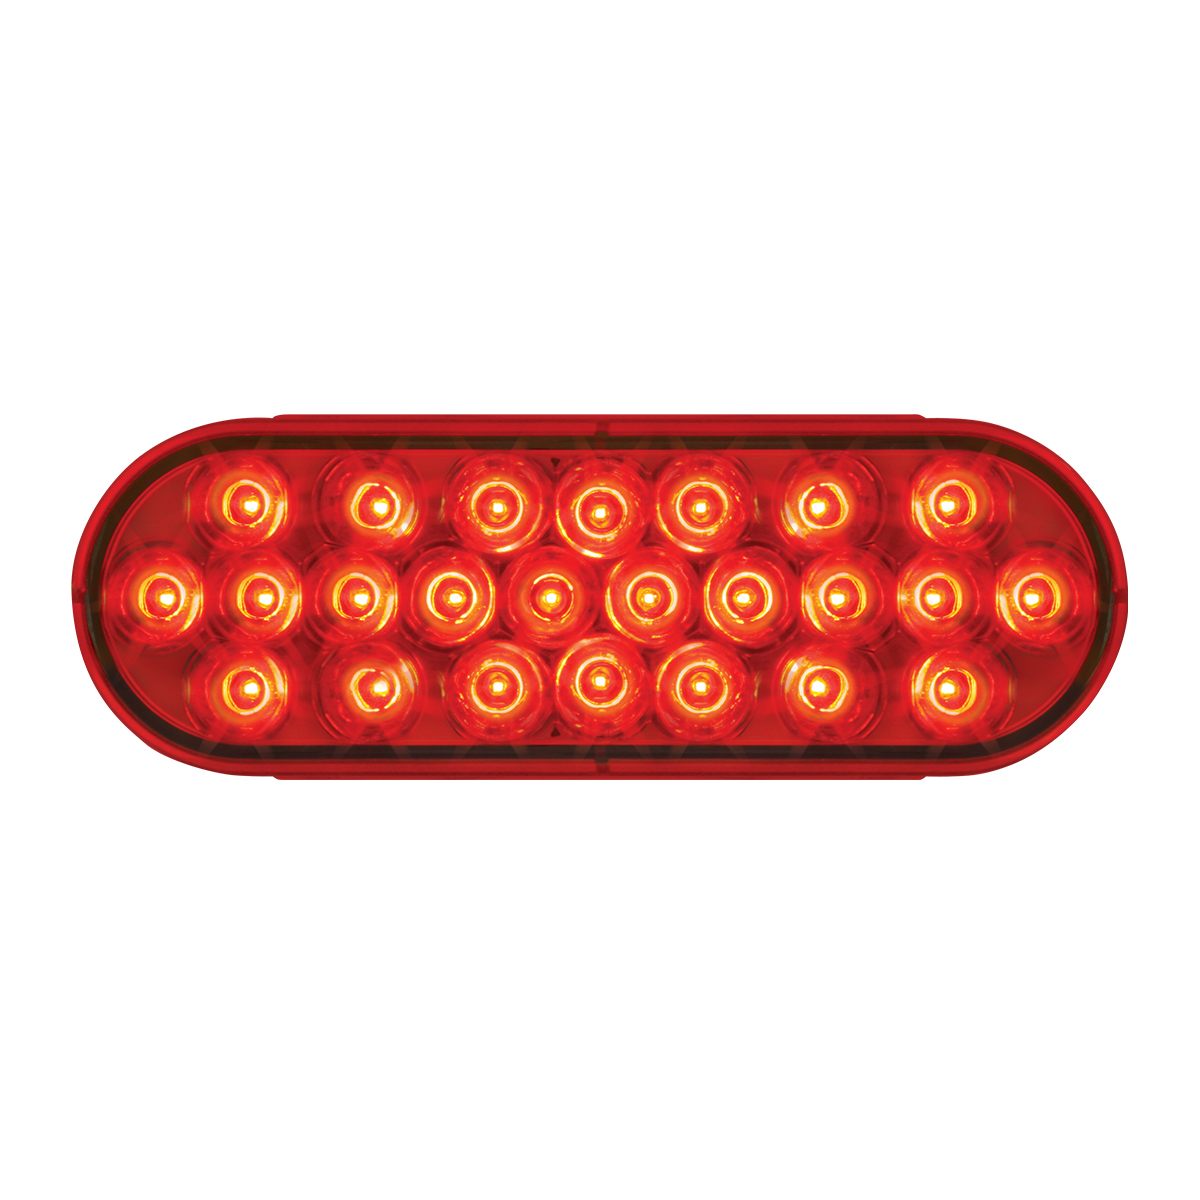 #78233 Oval Pearl LED Flat Red/Red Light